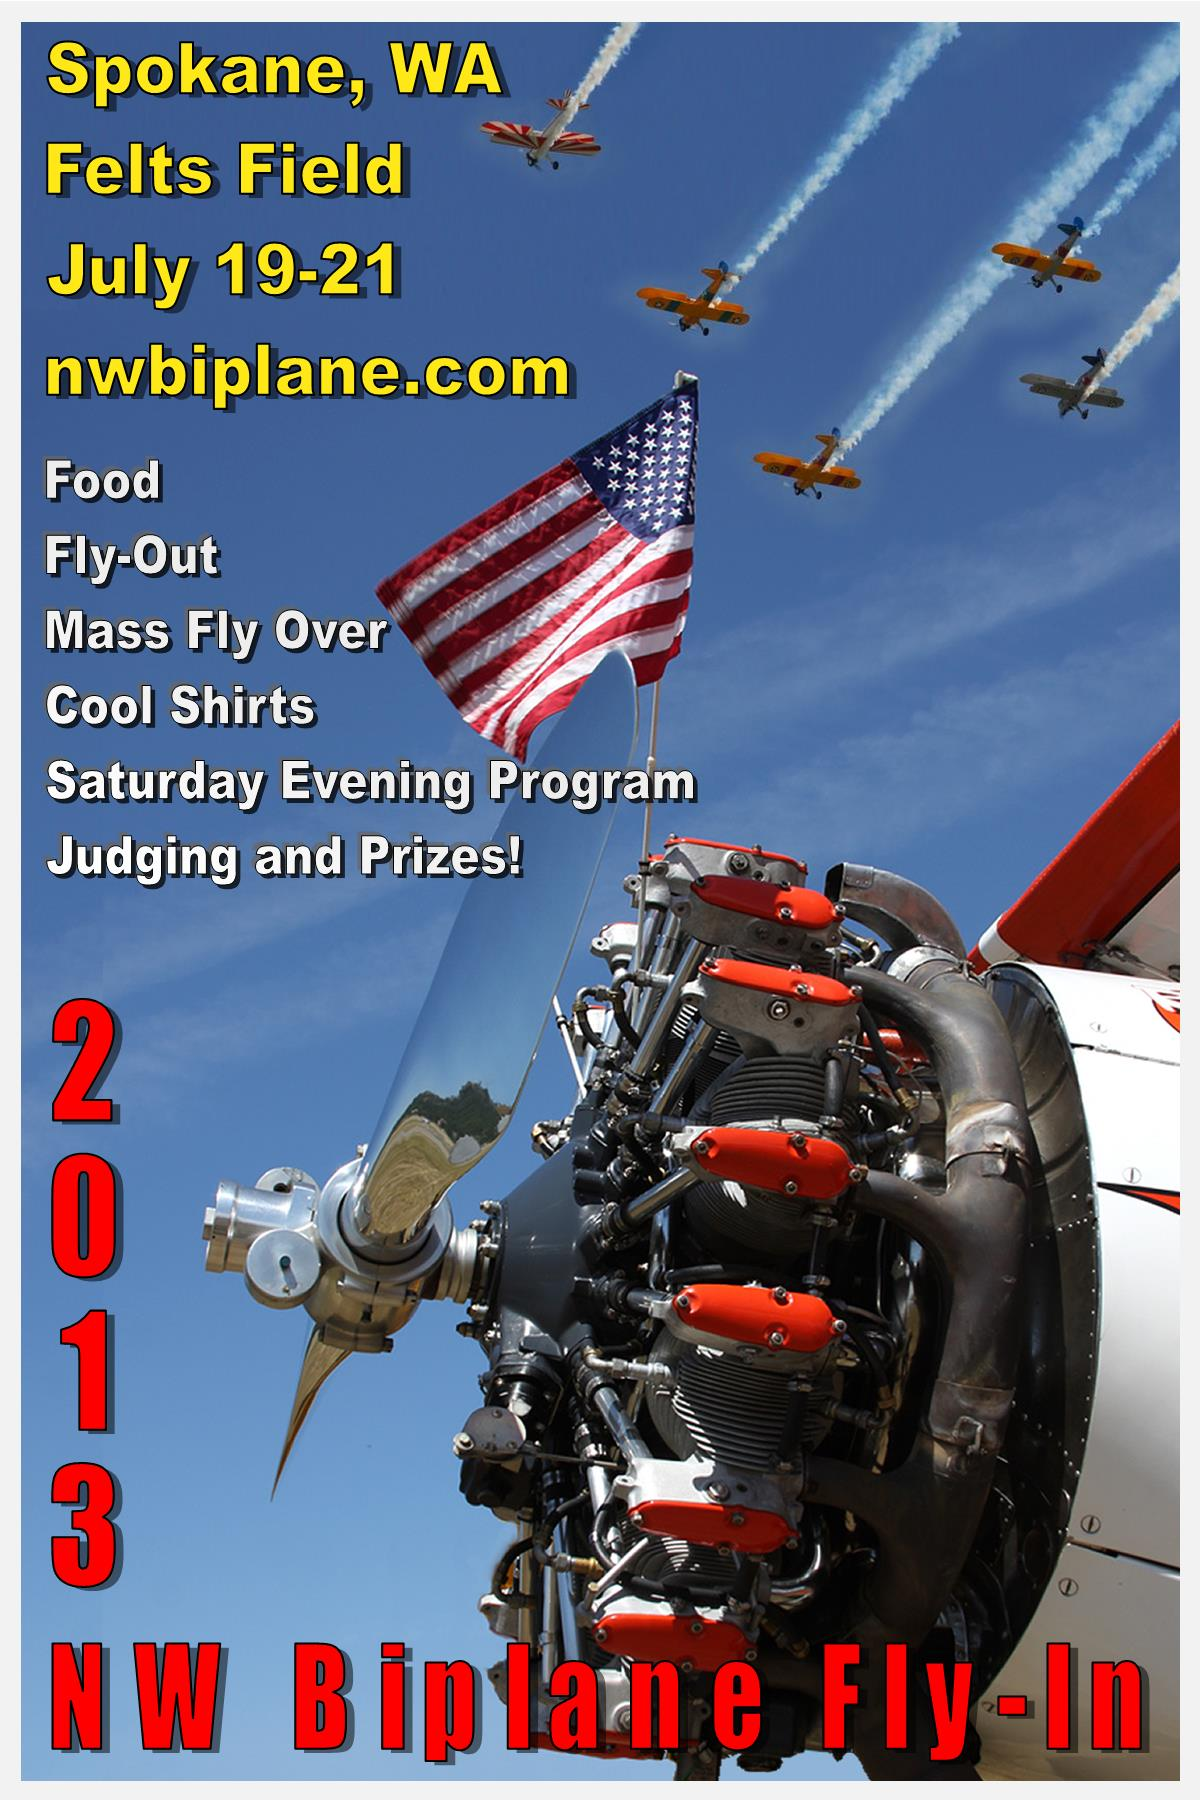 2013 NW Biplane Fly-In, Spokane Felts Field, WA